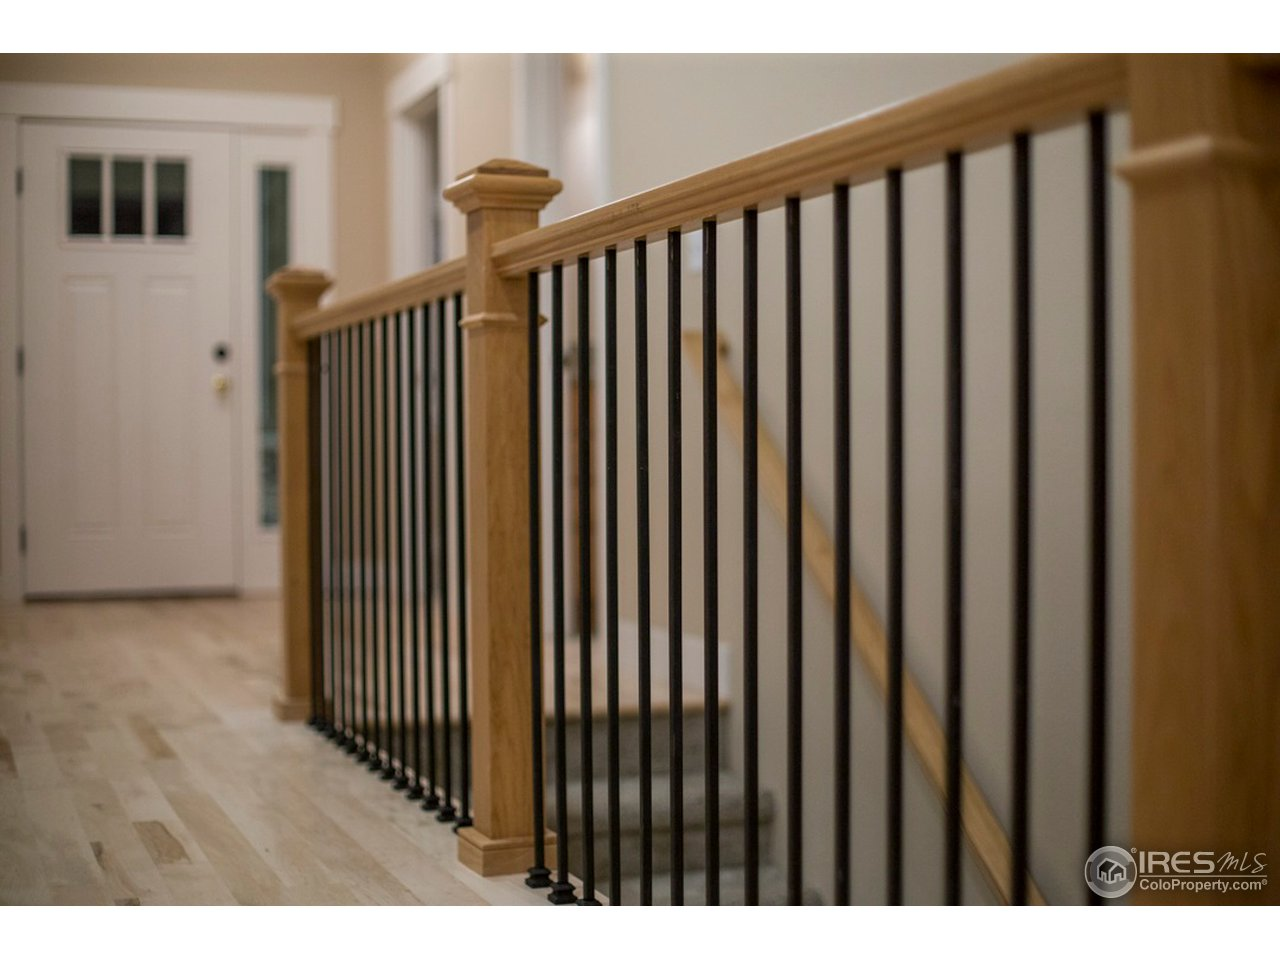 Example of the stair railing